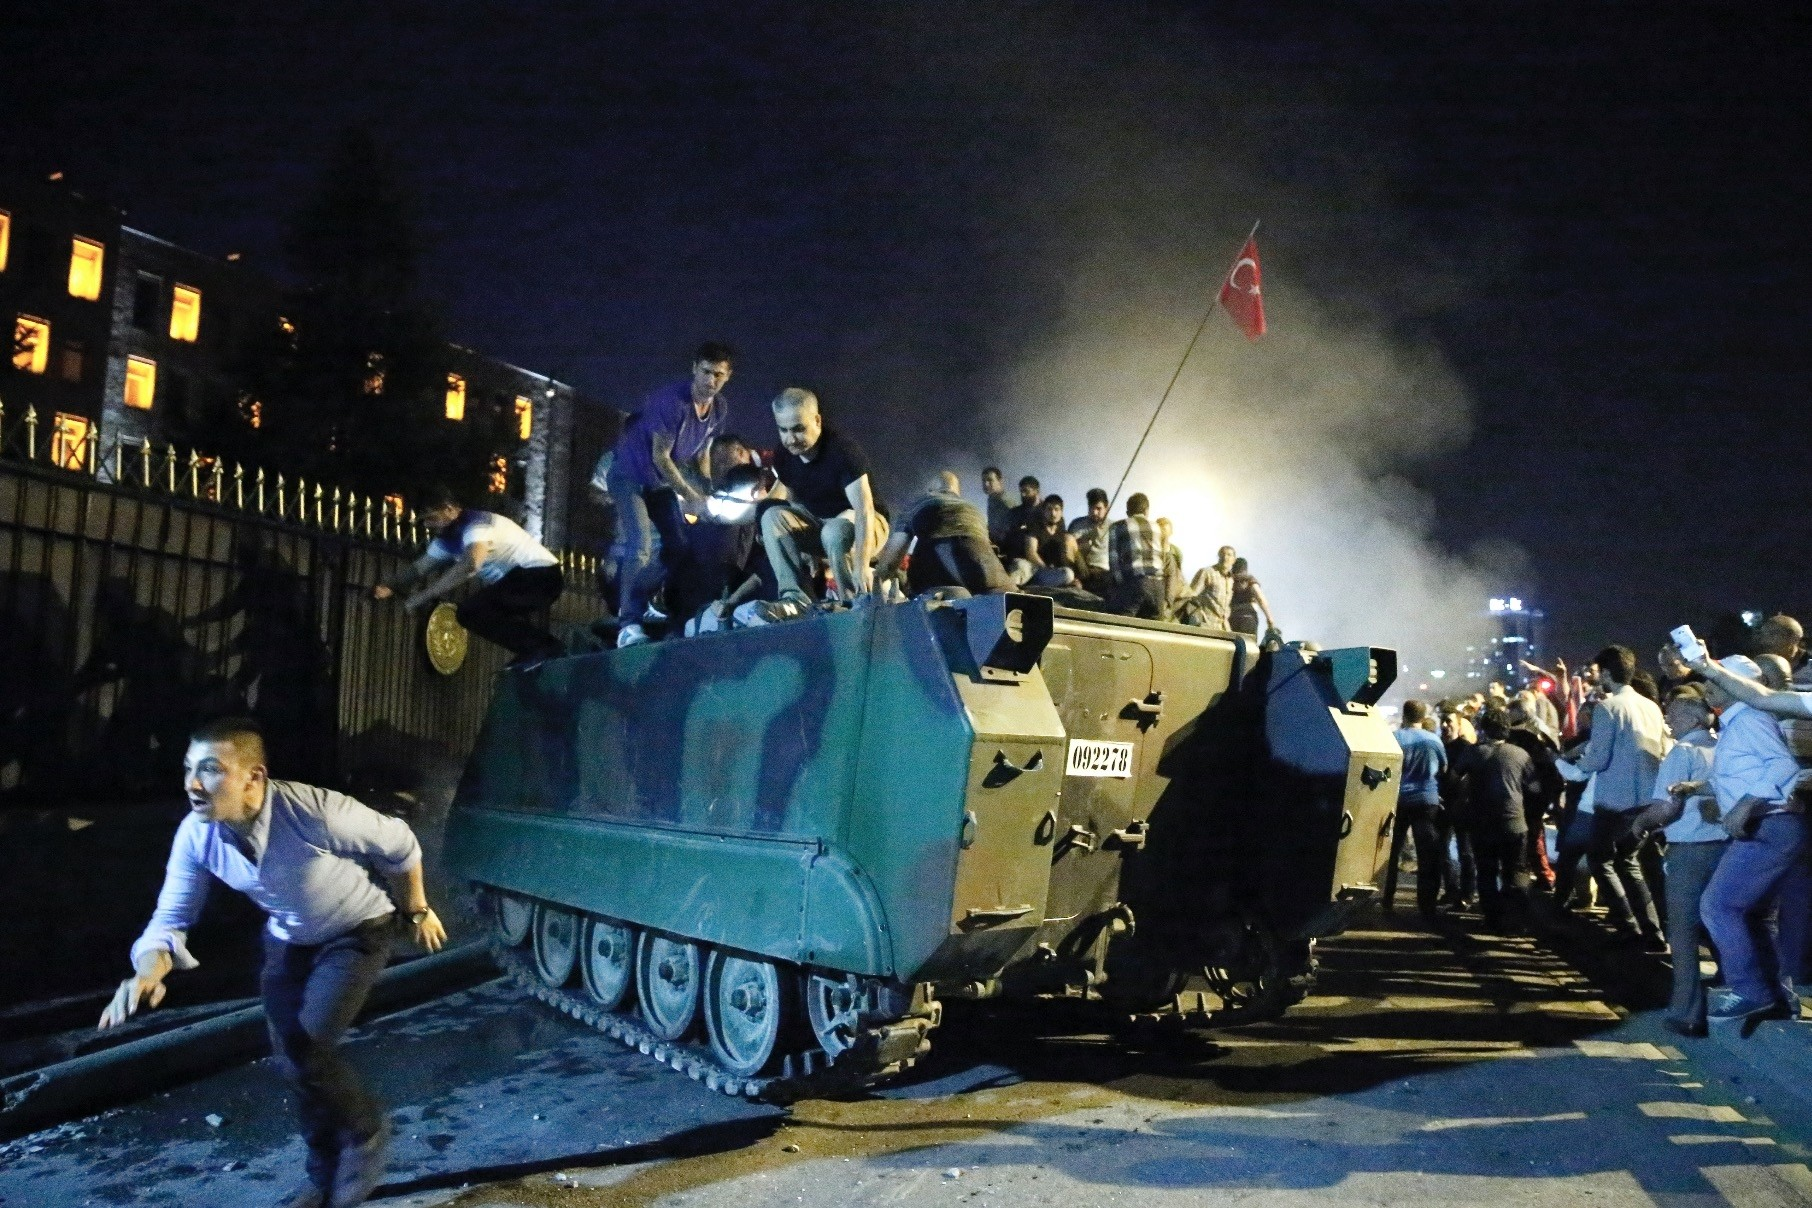 Anti-coup protesters stop a tank outside the military headquarters in Ankara on July 15, 2016. Some defendants sentenced to life in yesterdayu2019s trial were sent there by coup plotters in a bid to take it over.